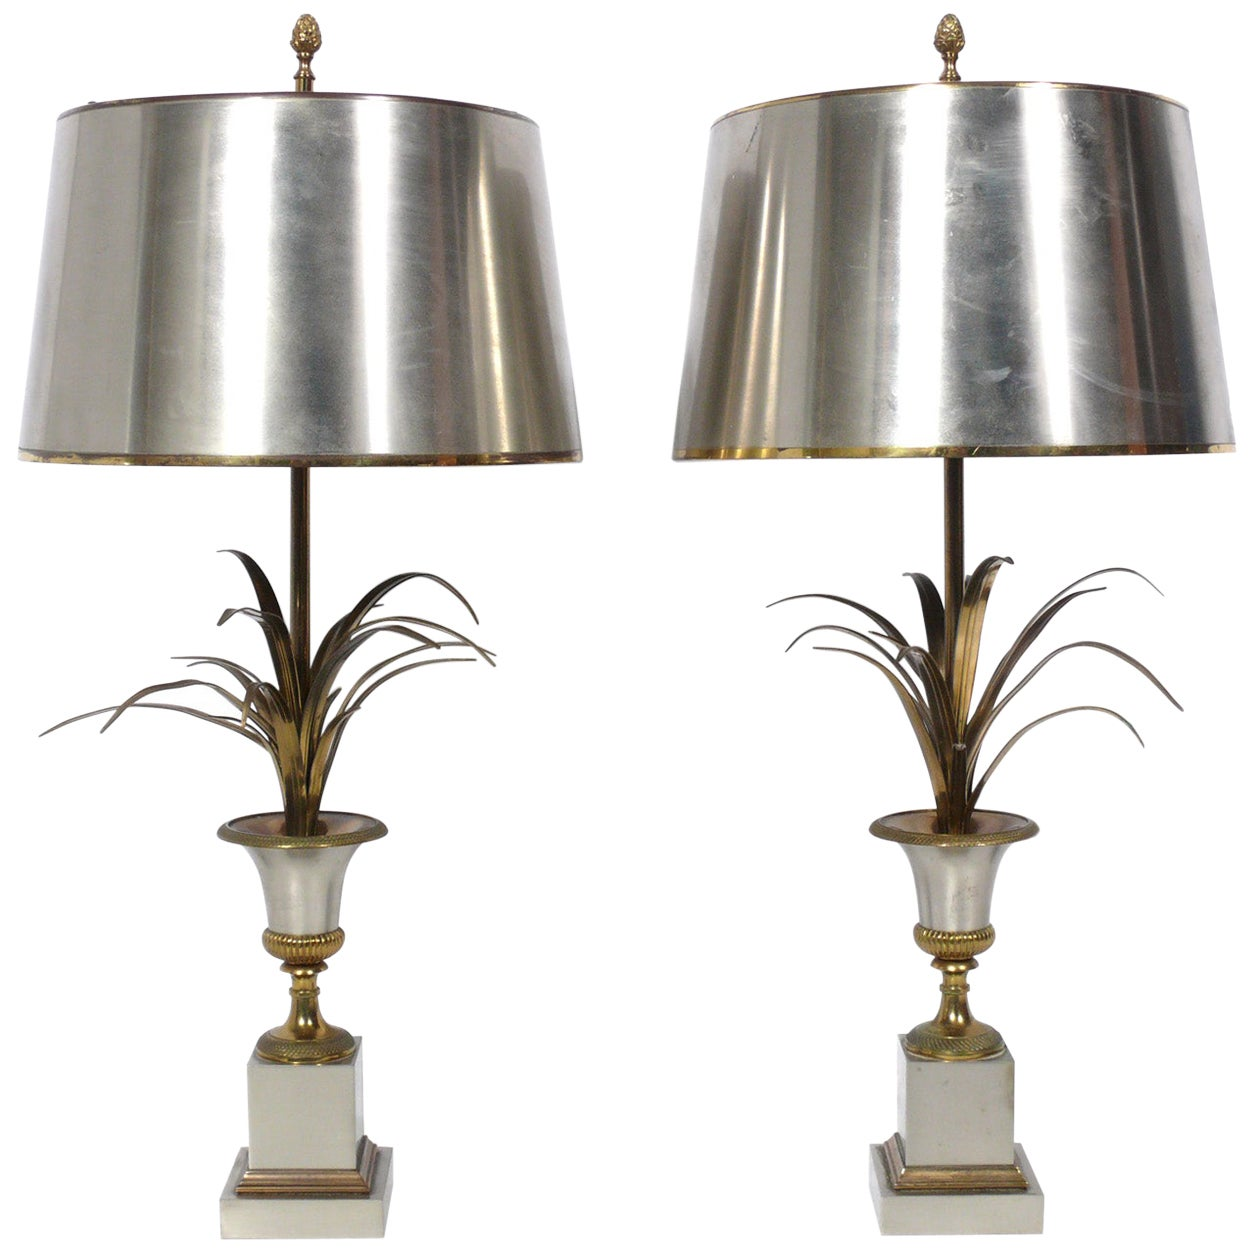 Pair of Maison Charles Signed Lamps